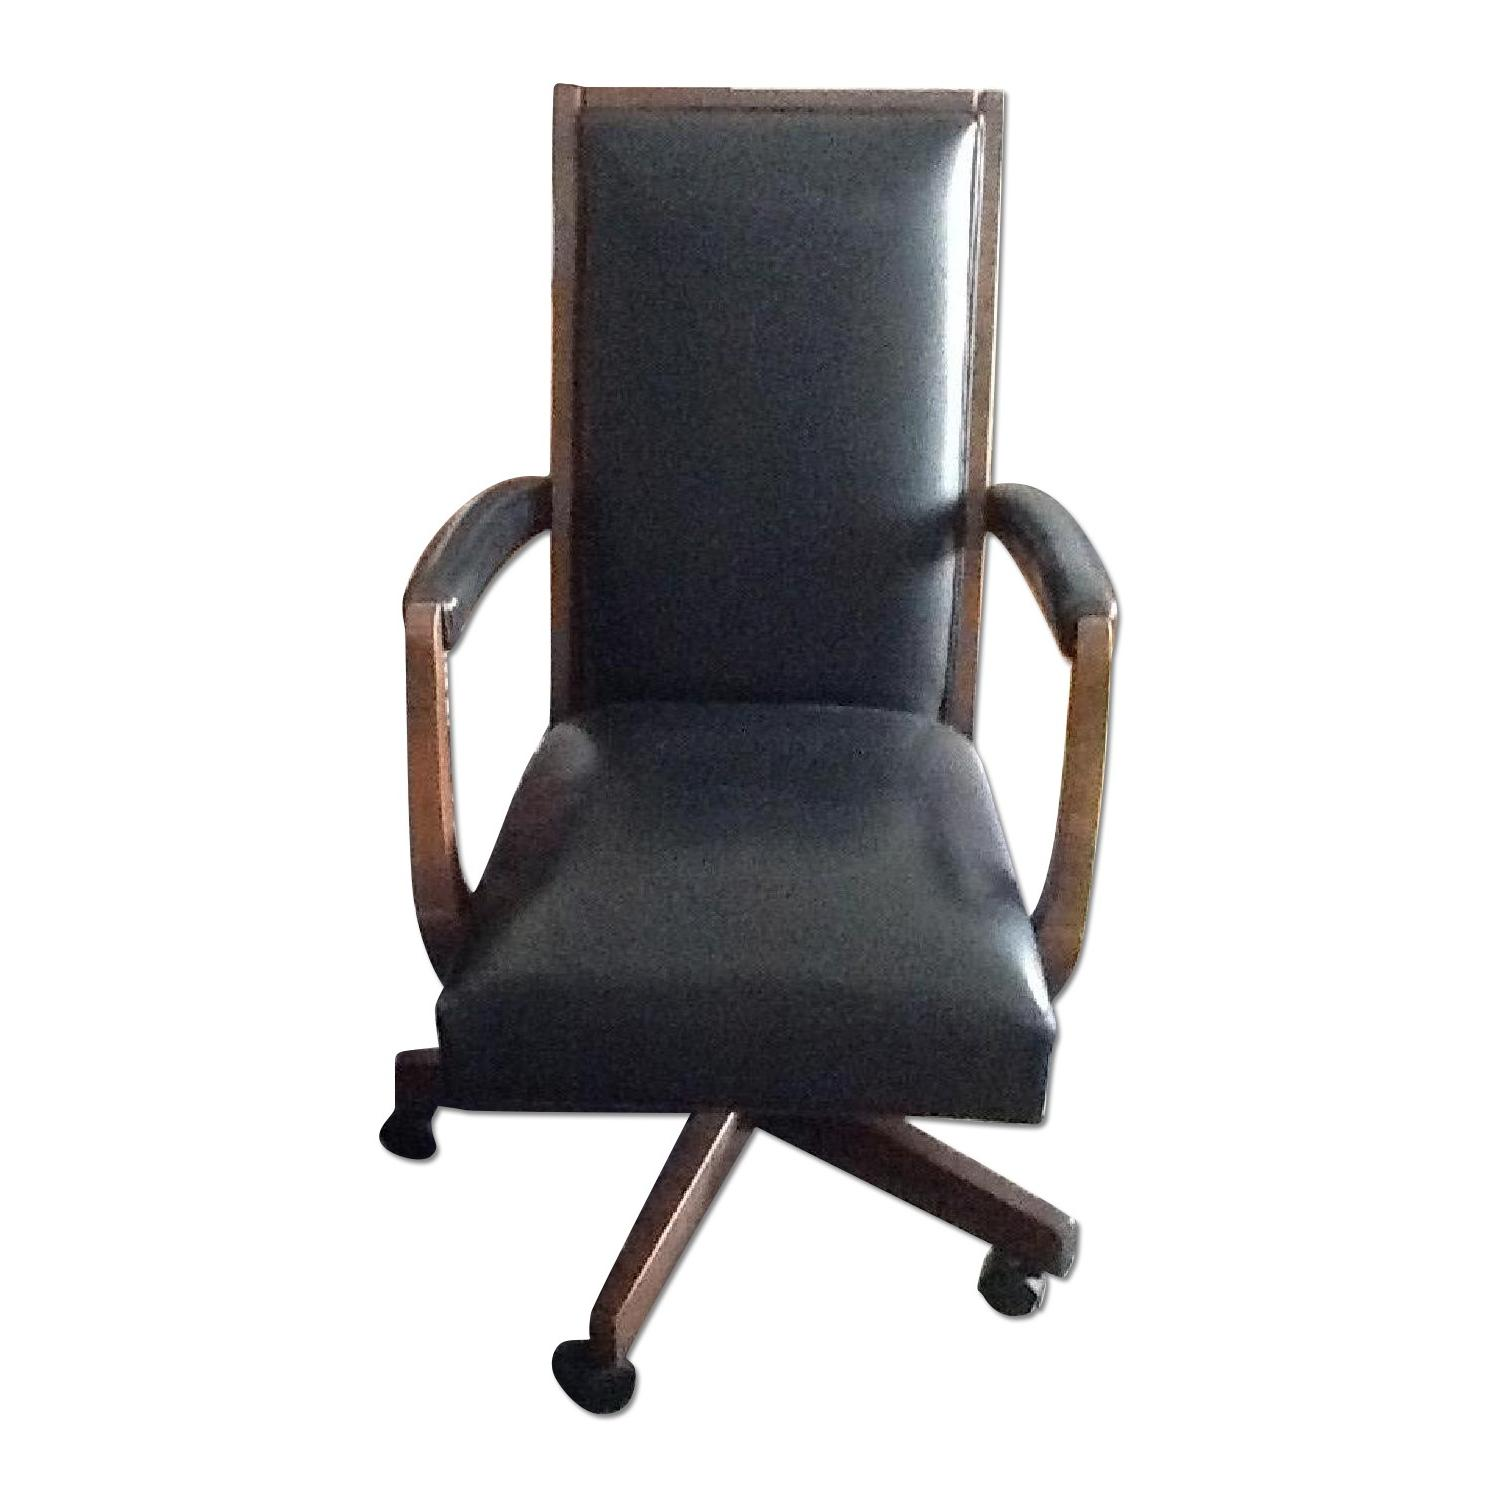 Ethan Allen Wood & Leather Desk Chair - image-0